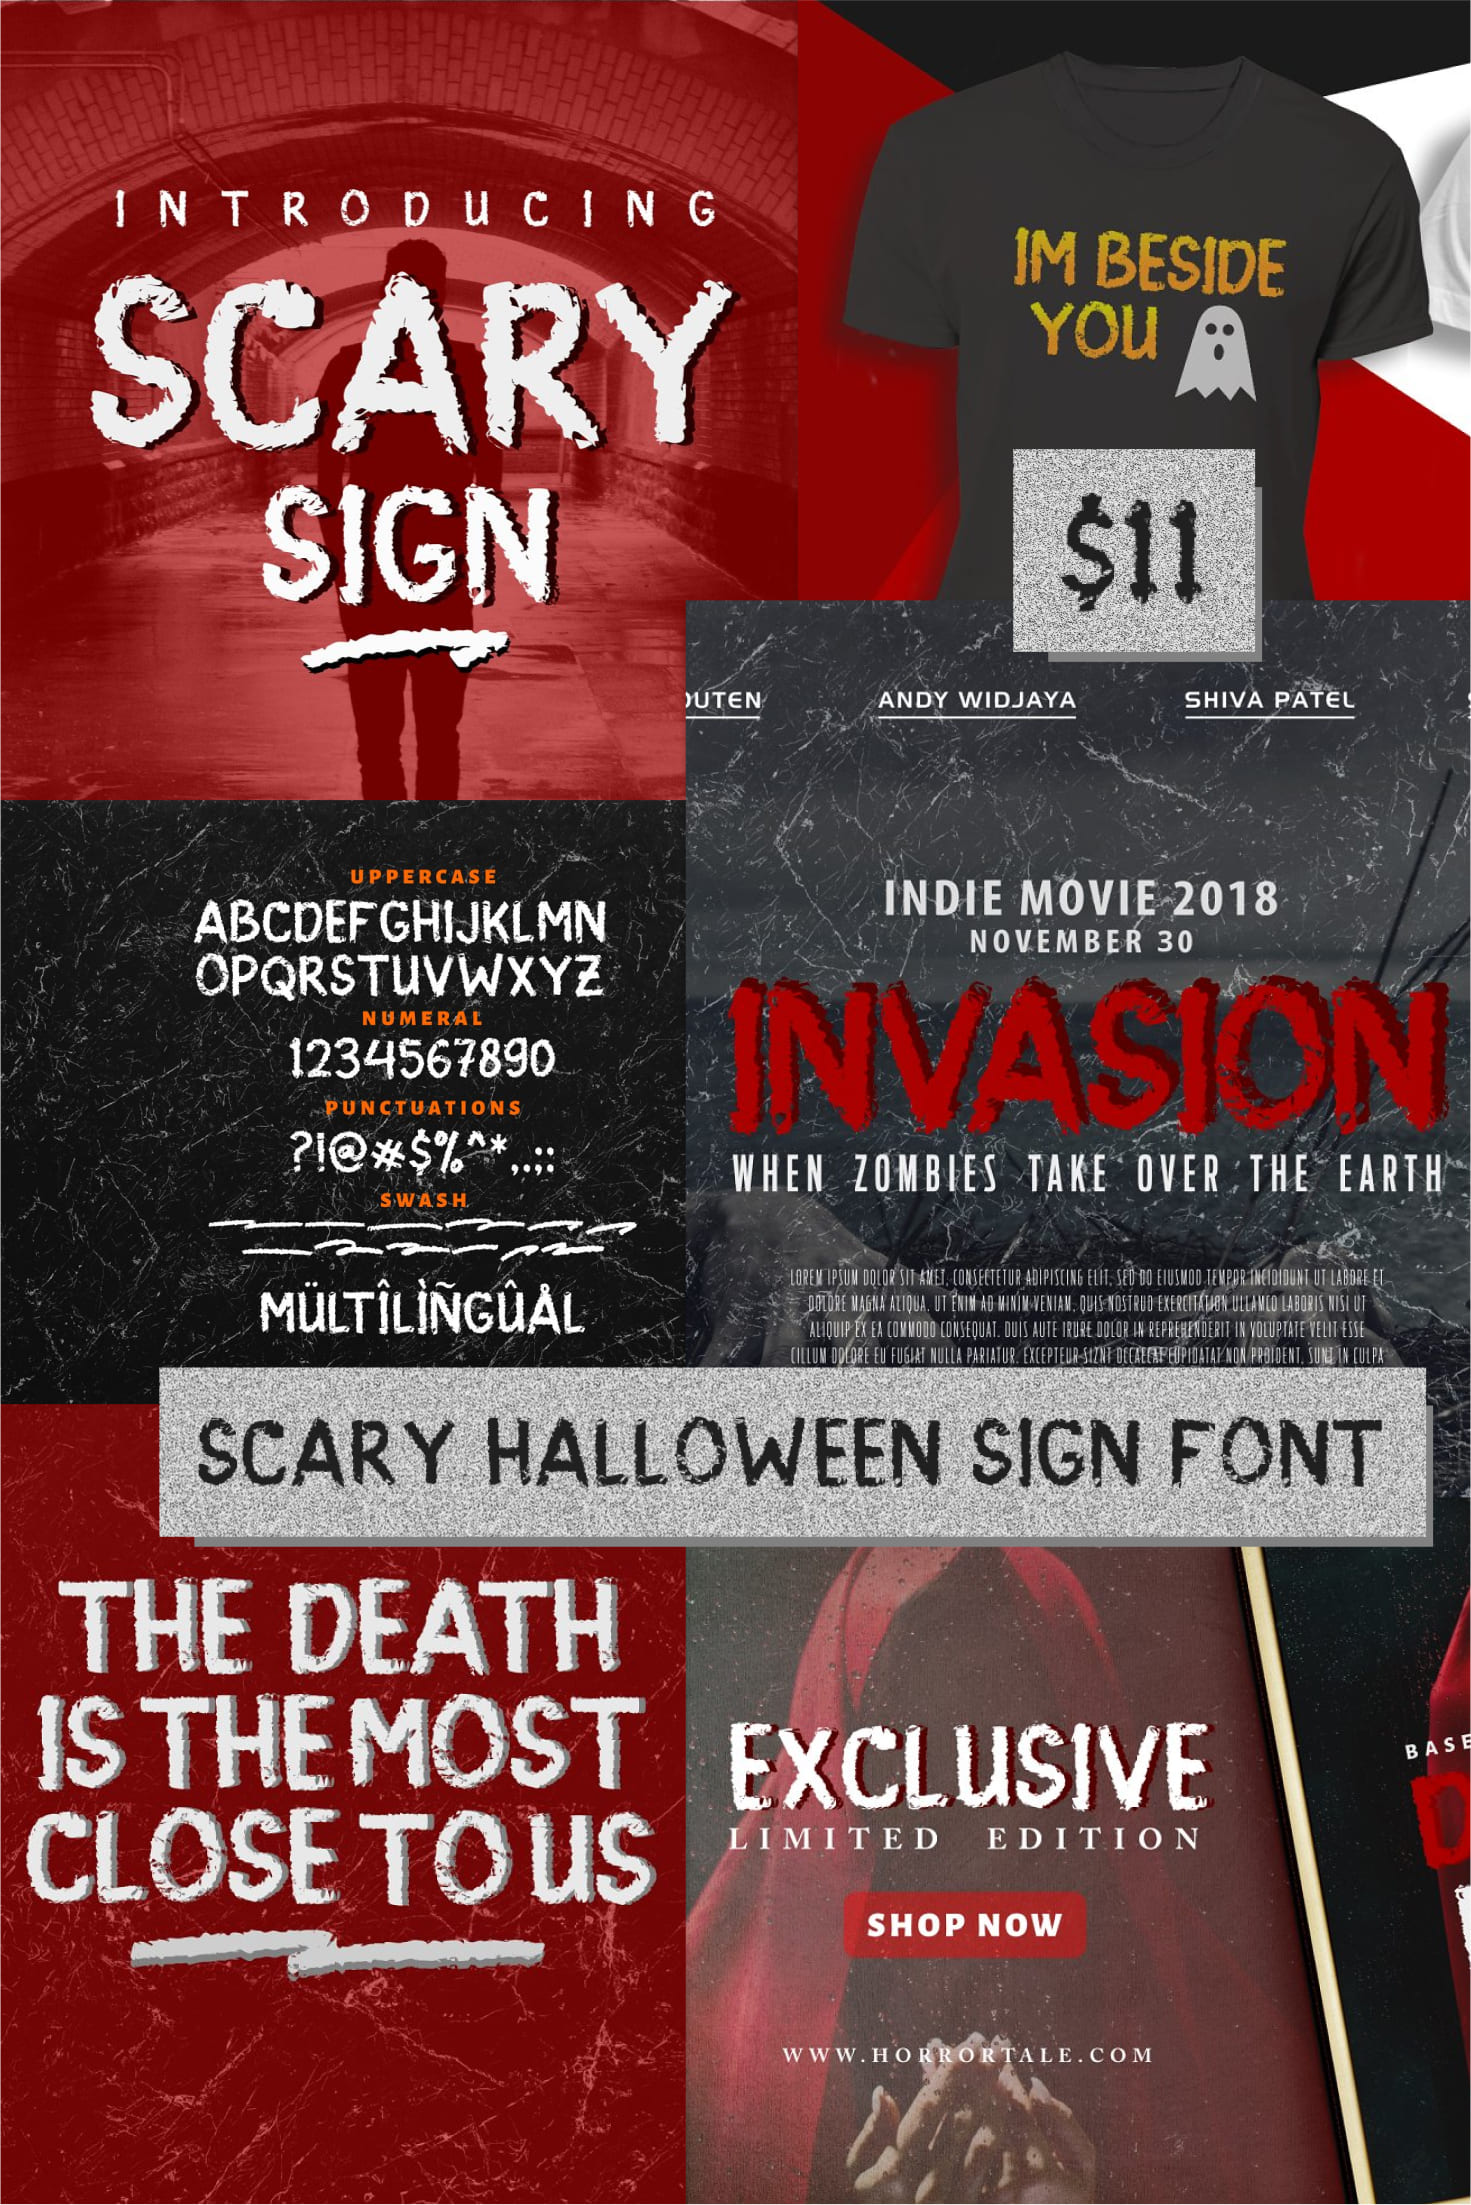 Pinterest Image: Scary Halloween Sign Font 2020.